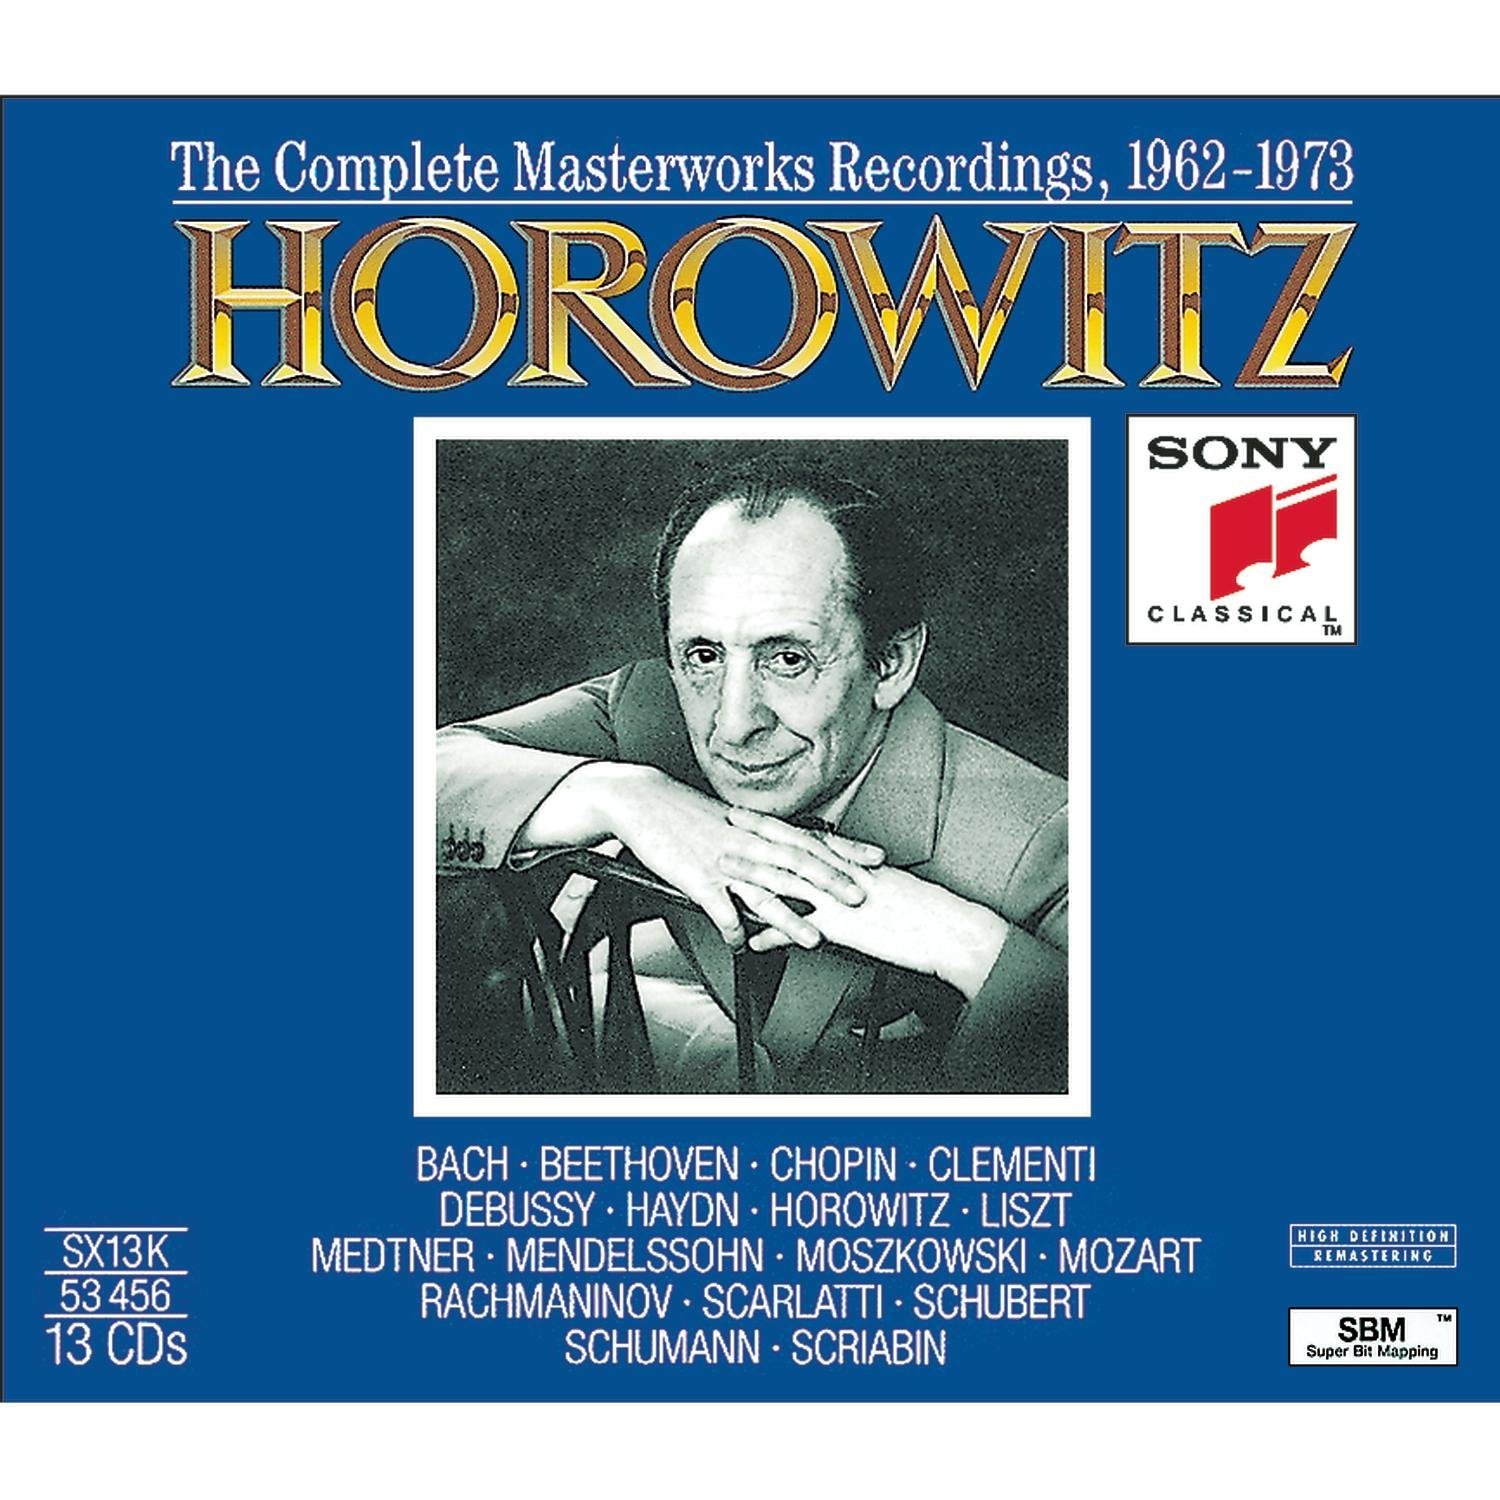 Vladimir Horowitz: Complete Masterwork Recordings, 1962-1973 by Sony Classical